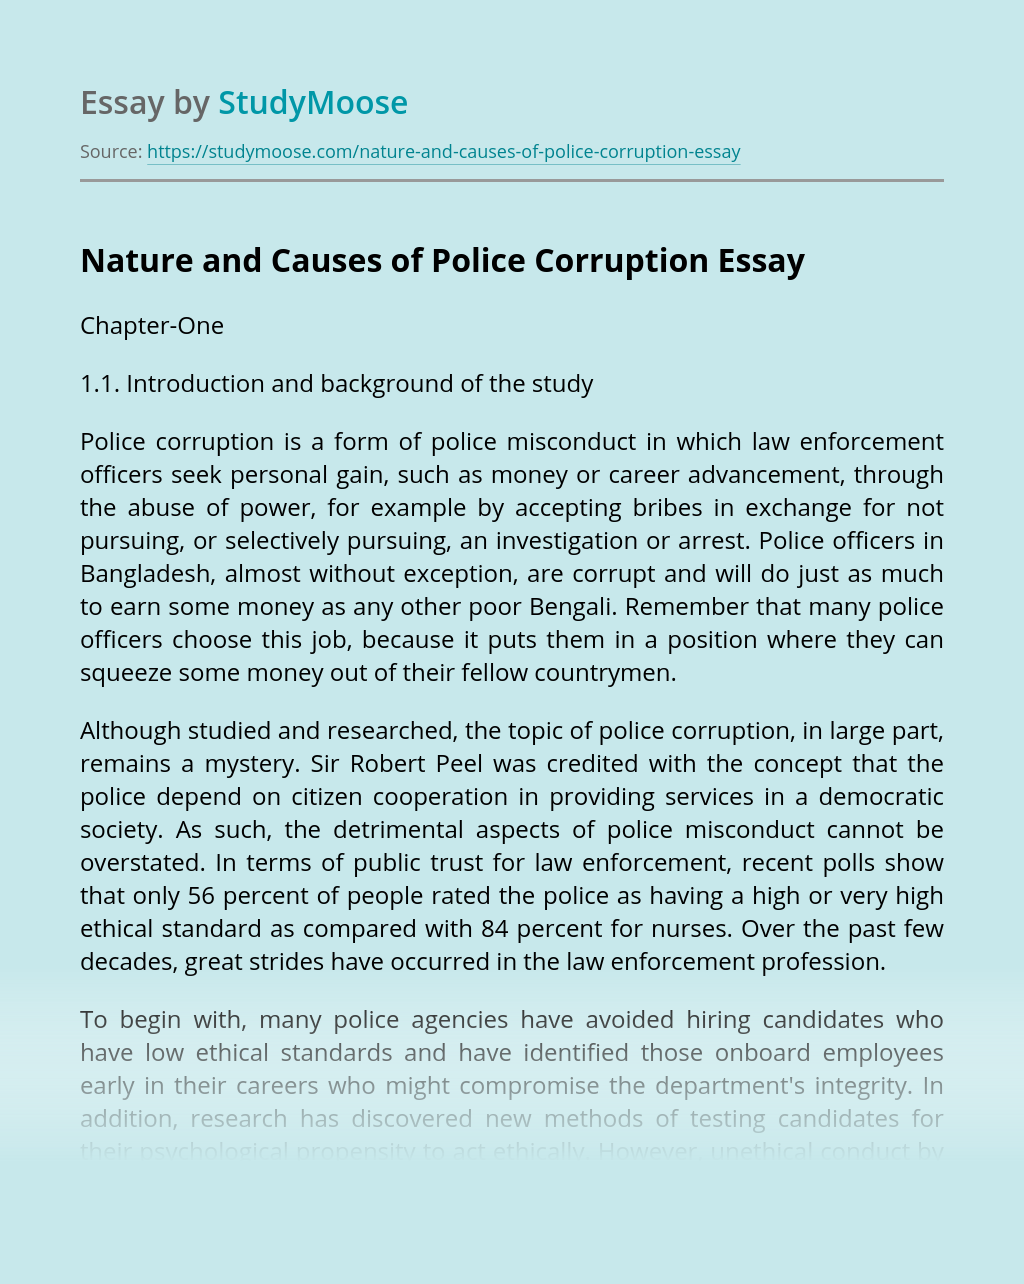 Nature and Causes of Police Corruption